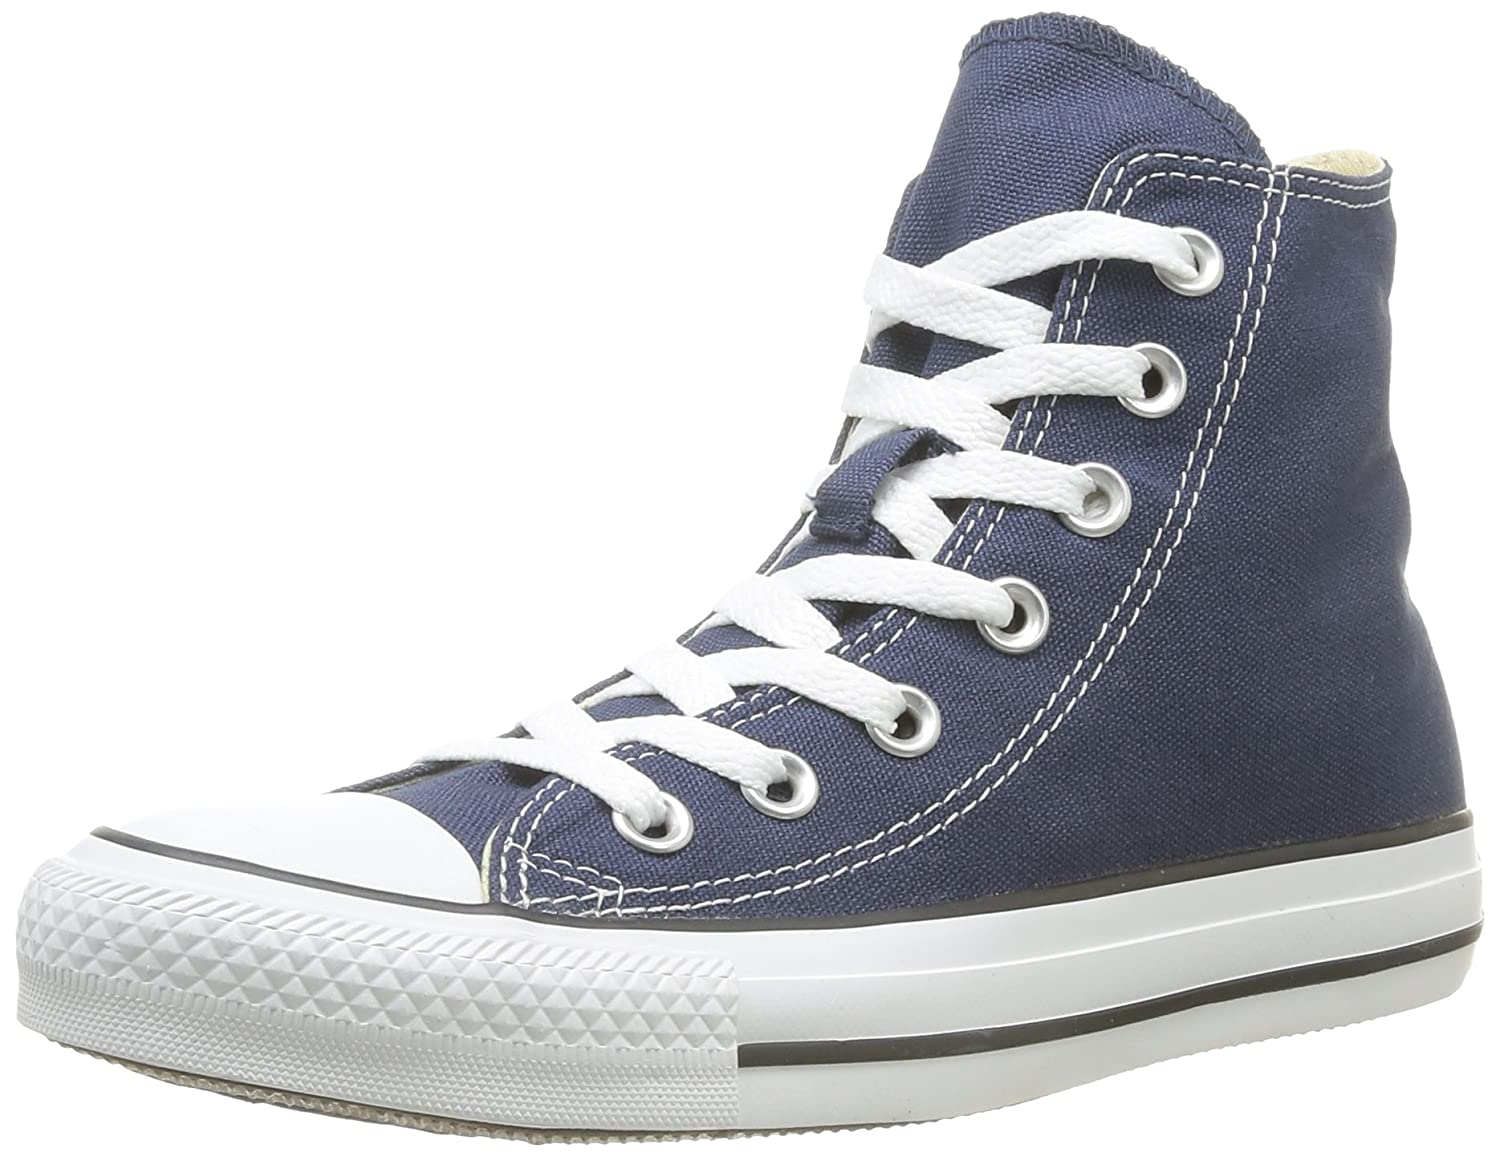 Converse Unisex Chuck Taylor All-Star High-Top Casual Sneakers in Classic Style and Color and Durable Canvas Uppers B071Y74M9F Mens 3.5 Womens 5.5|Navy